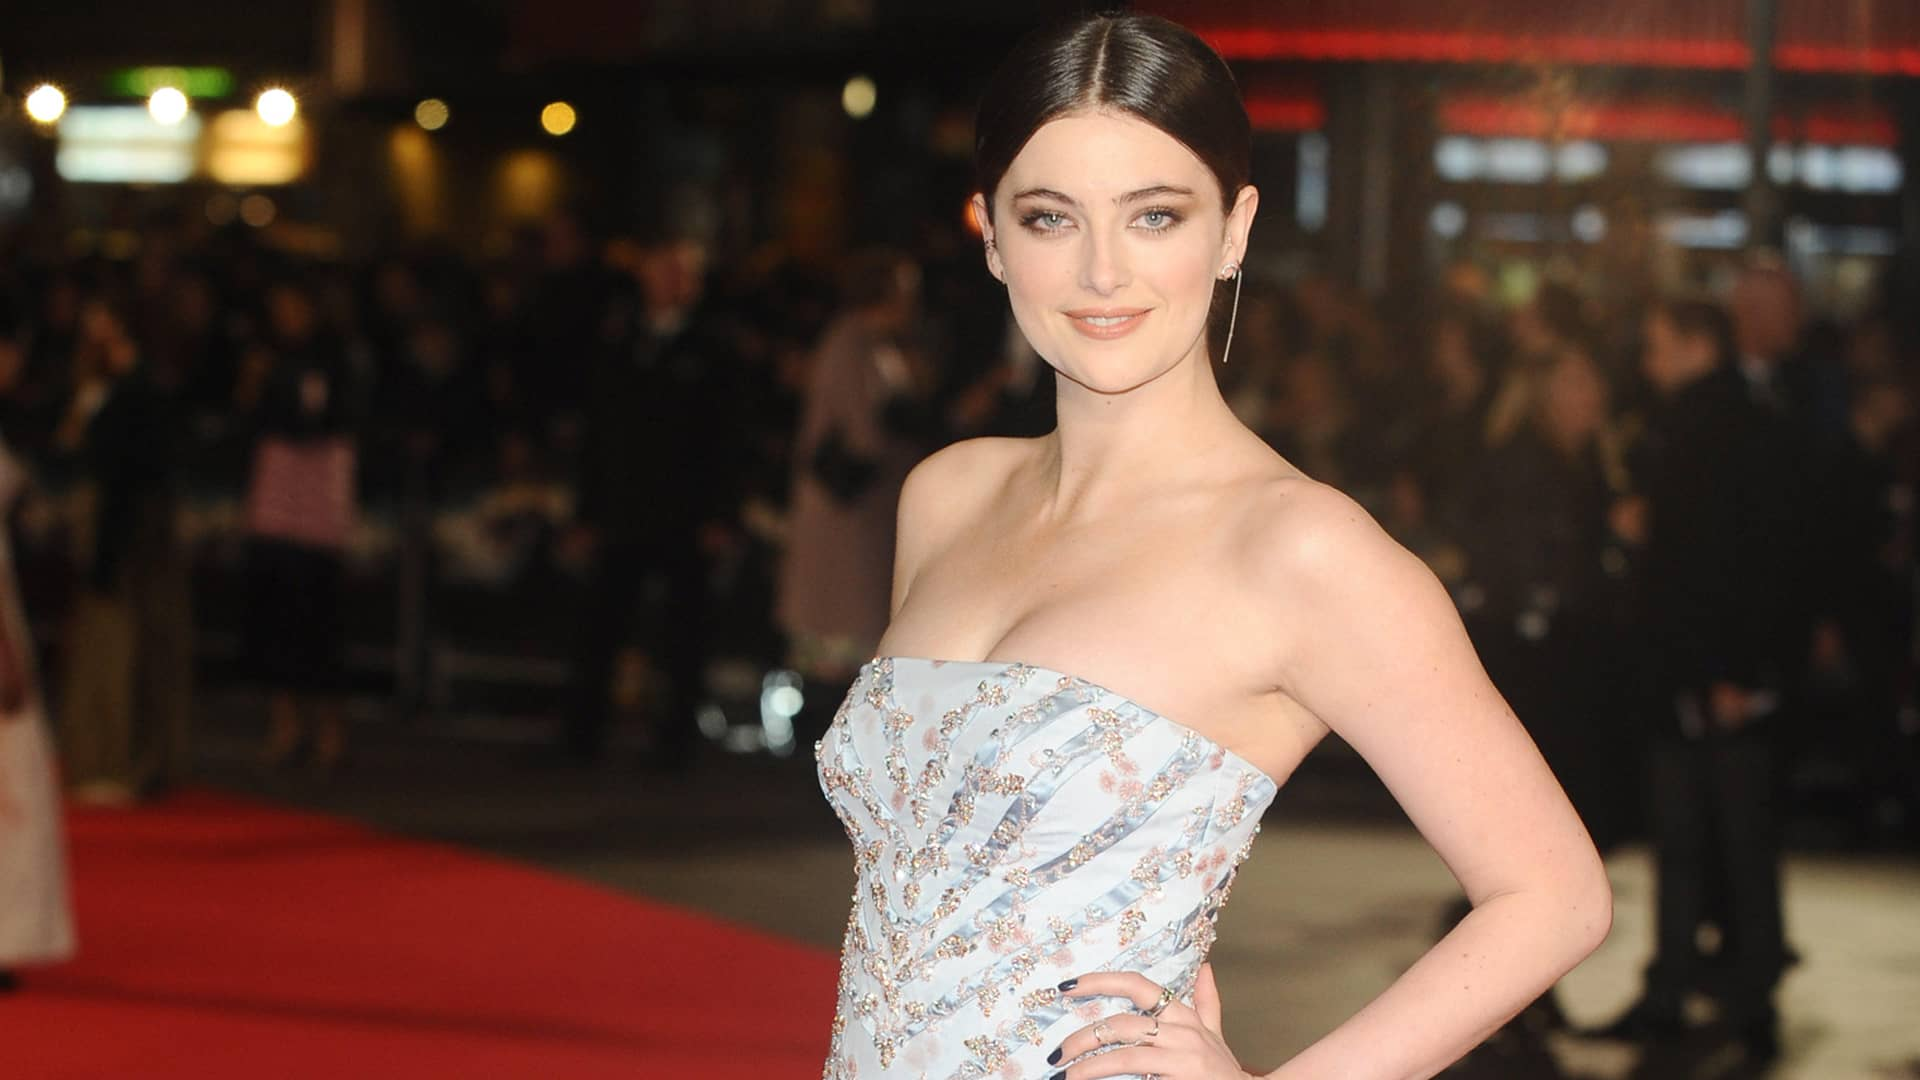 Roadkill actress Millie Brady